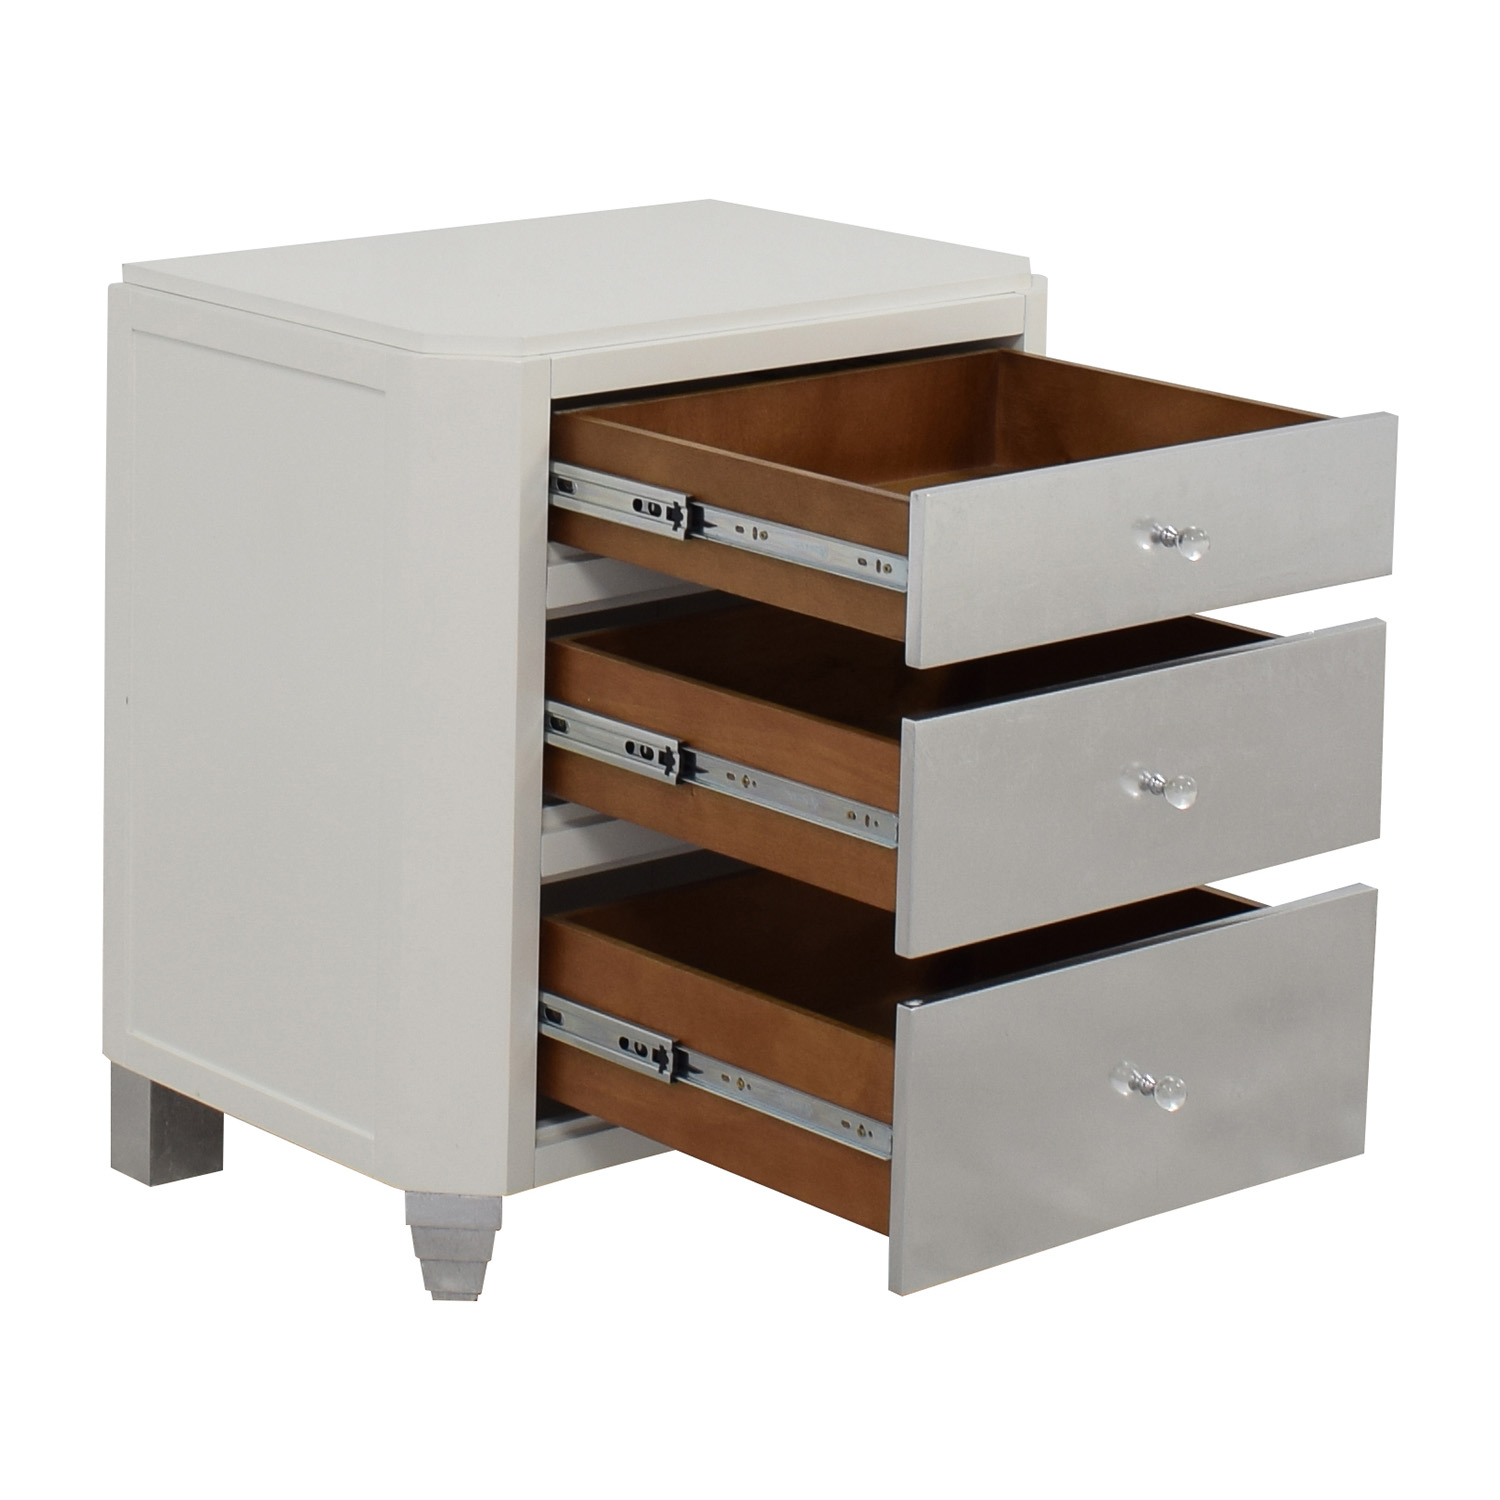 Bungalow 5 Bungalow 5 Mame Three-Drawer Side Table Tables